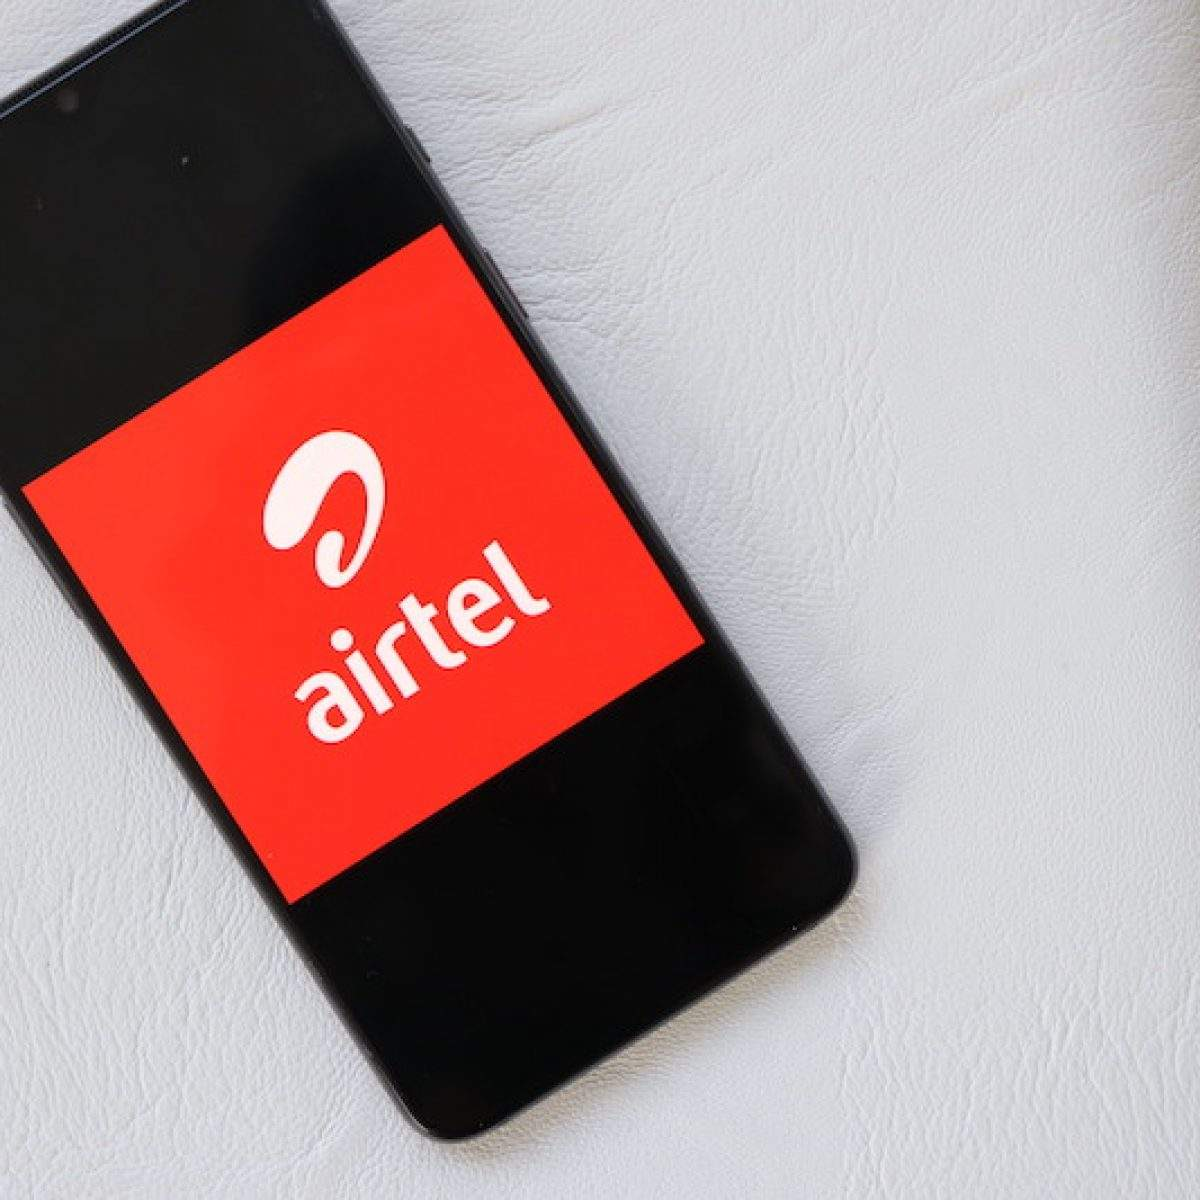 New plans, IPL to drive growth of Airtel's home broadband, DTH businesses: Analysts